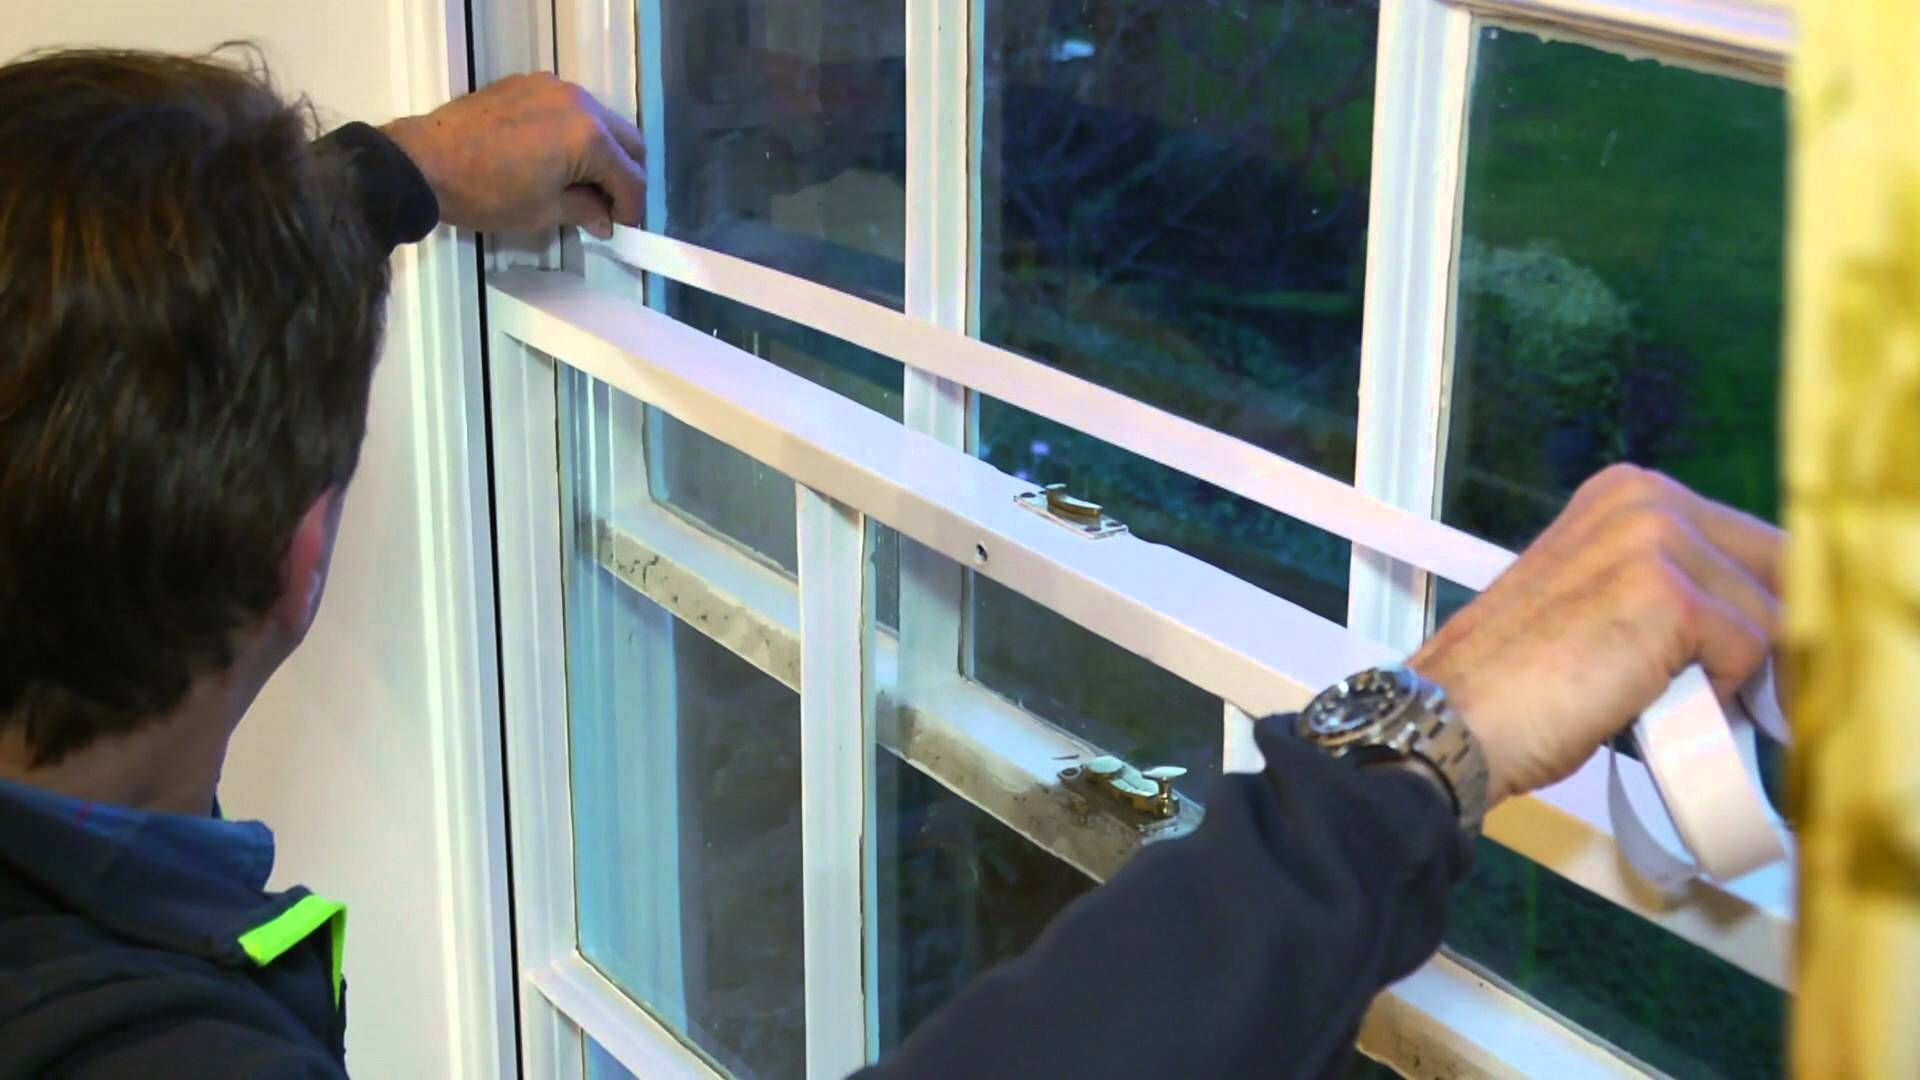 Sash window draught proofing specialists fitting a